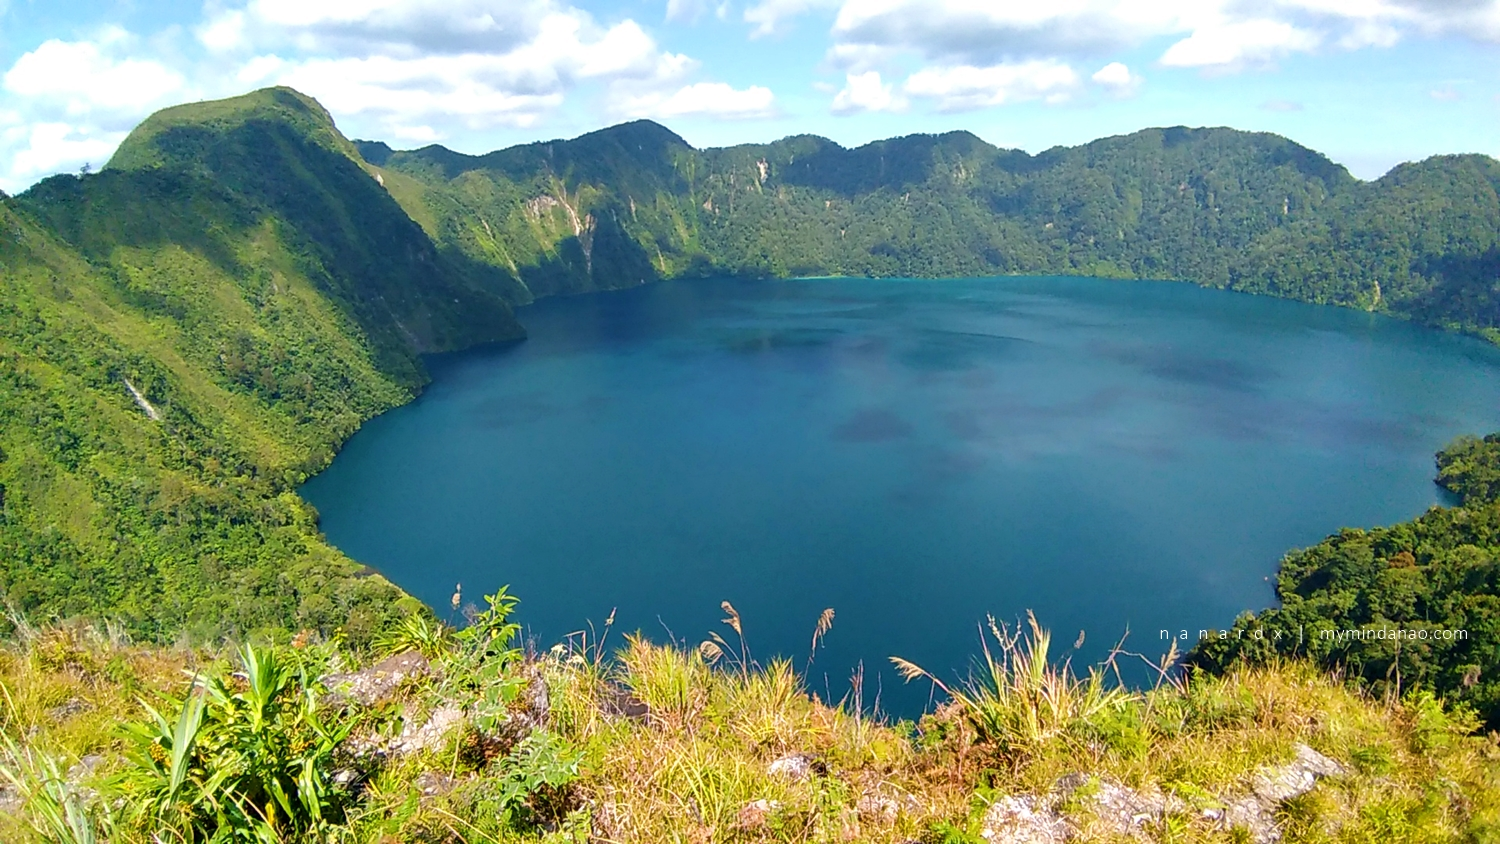 All set for annual pilgrimage, reopening of Lake Holon